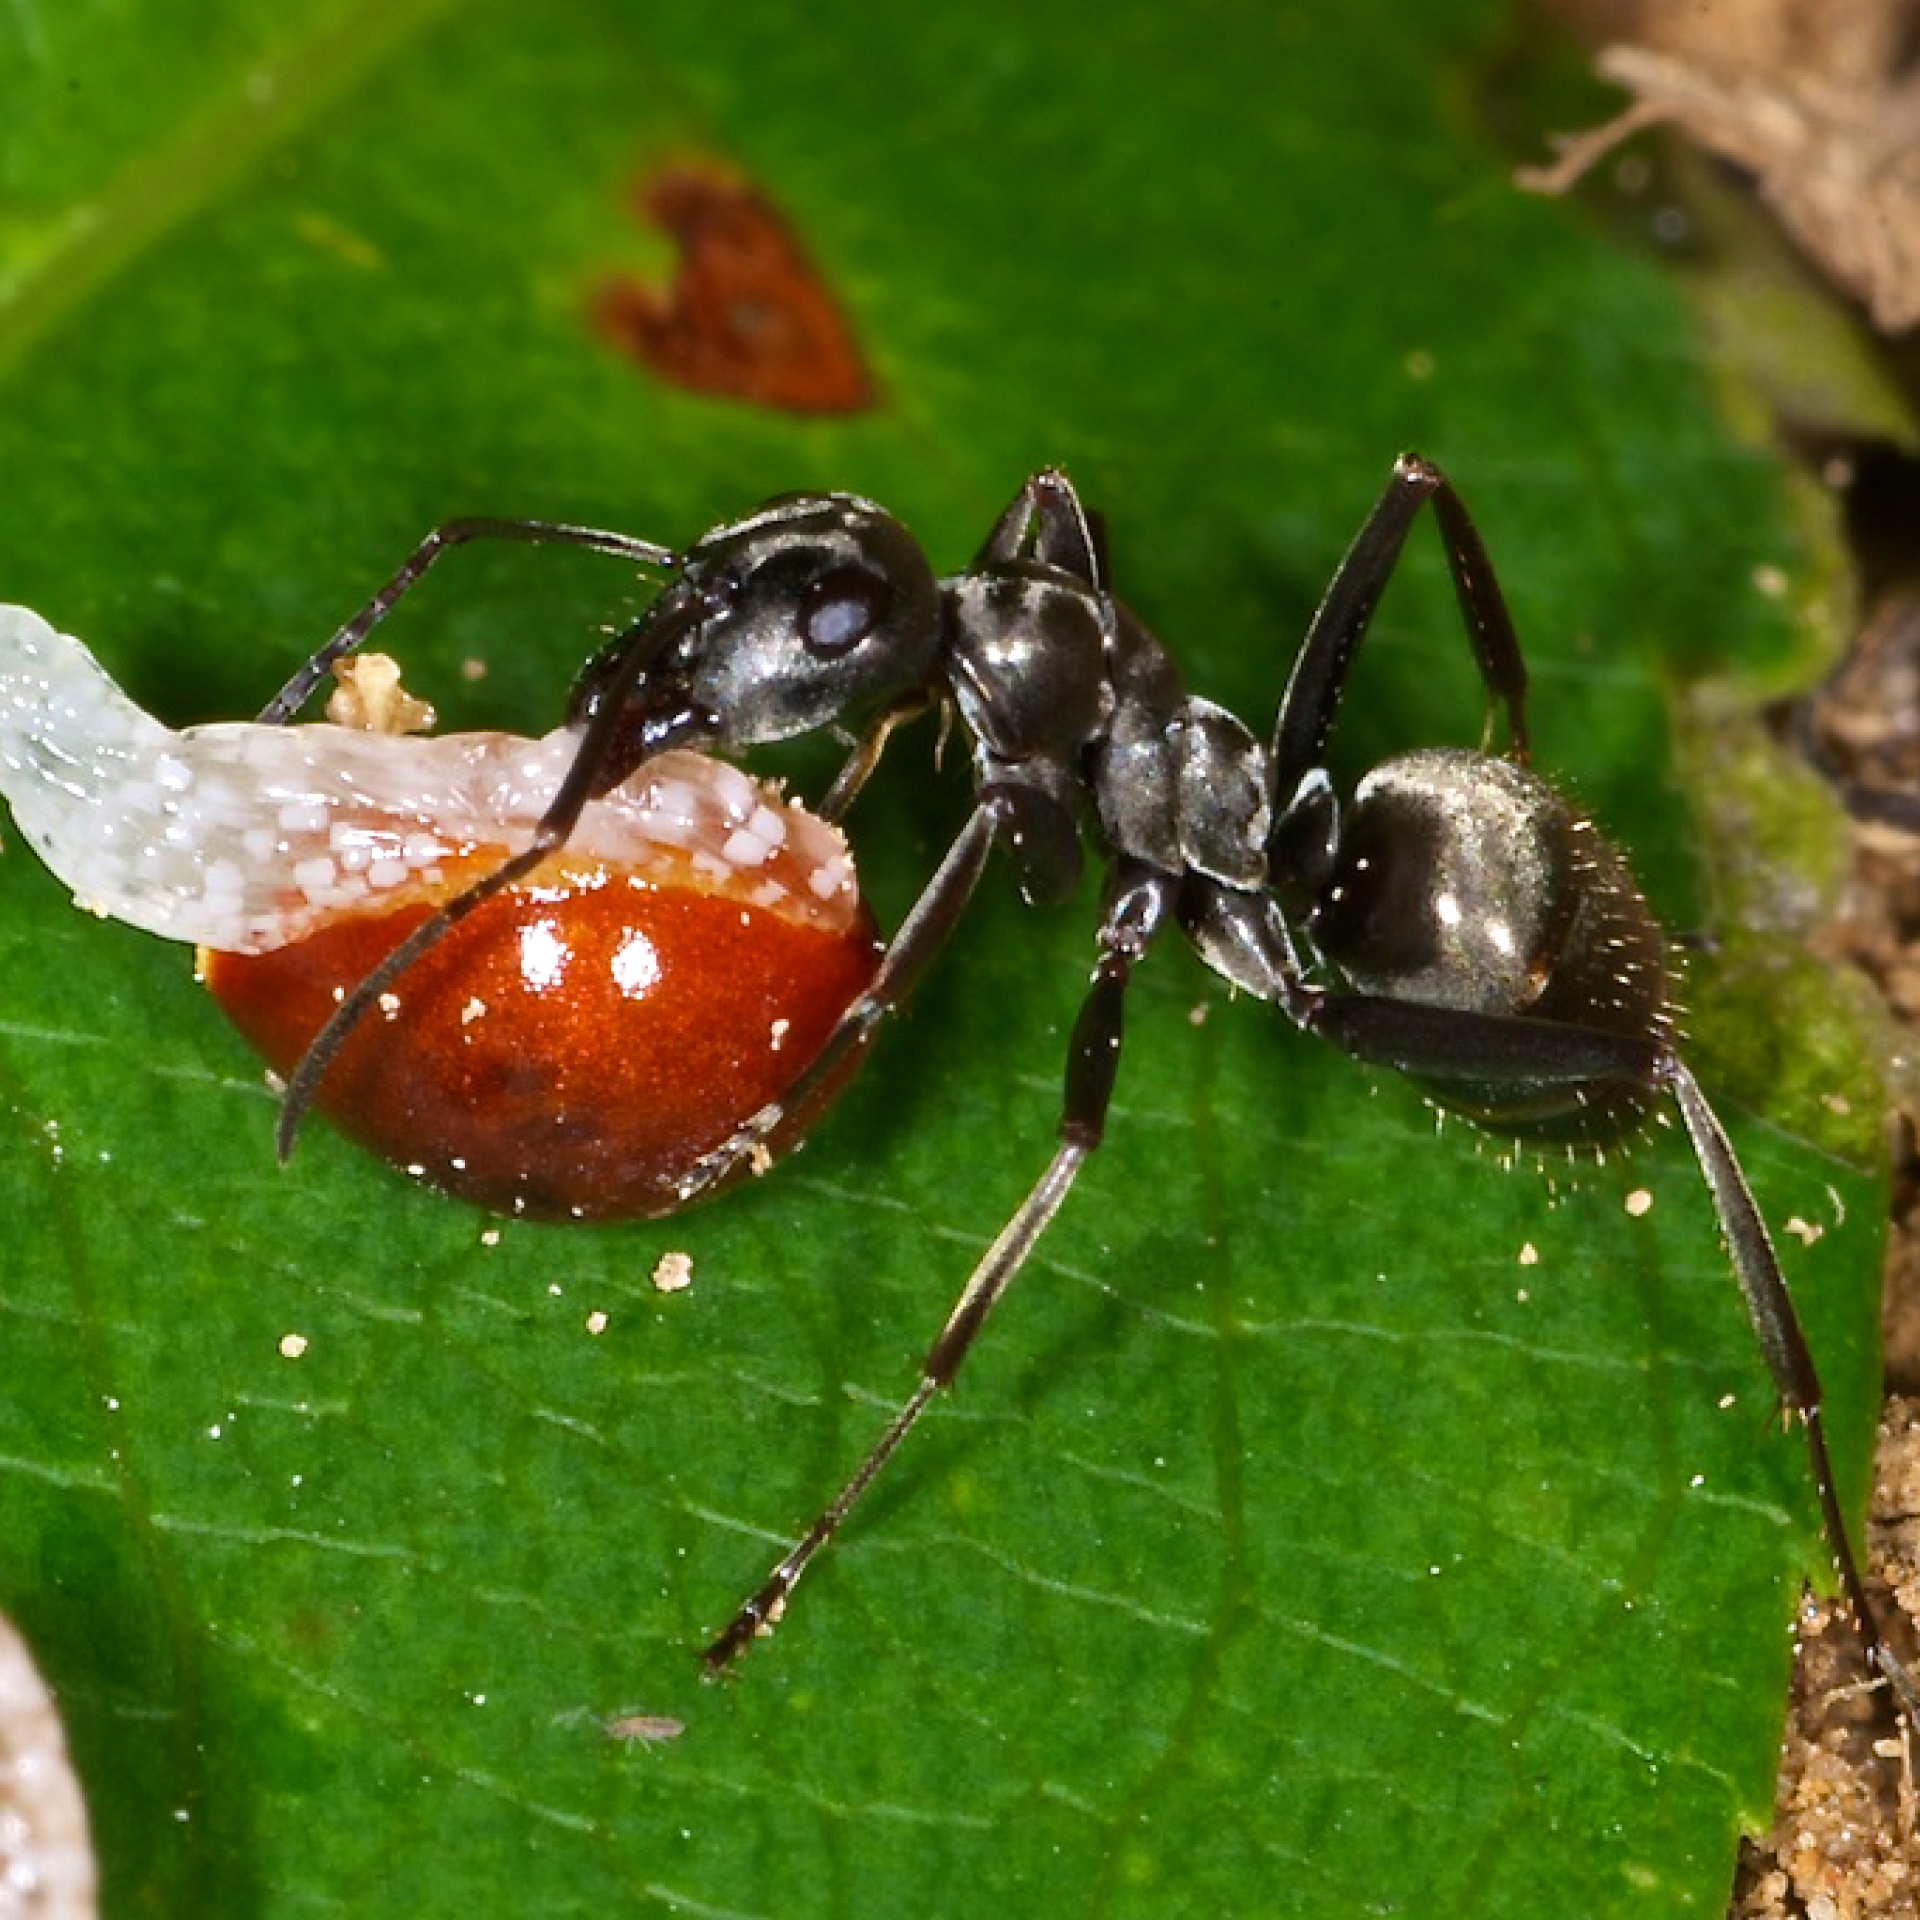 Ant carrying a bloodroot seed.